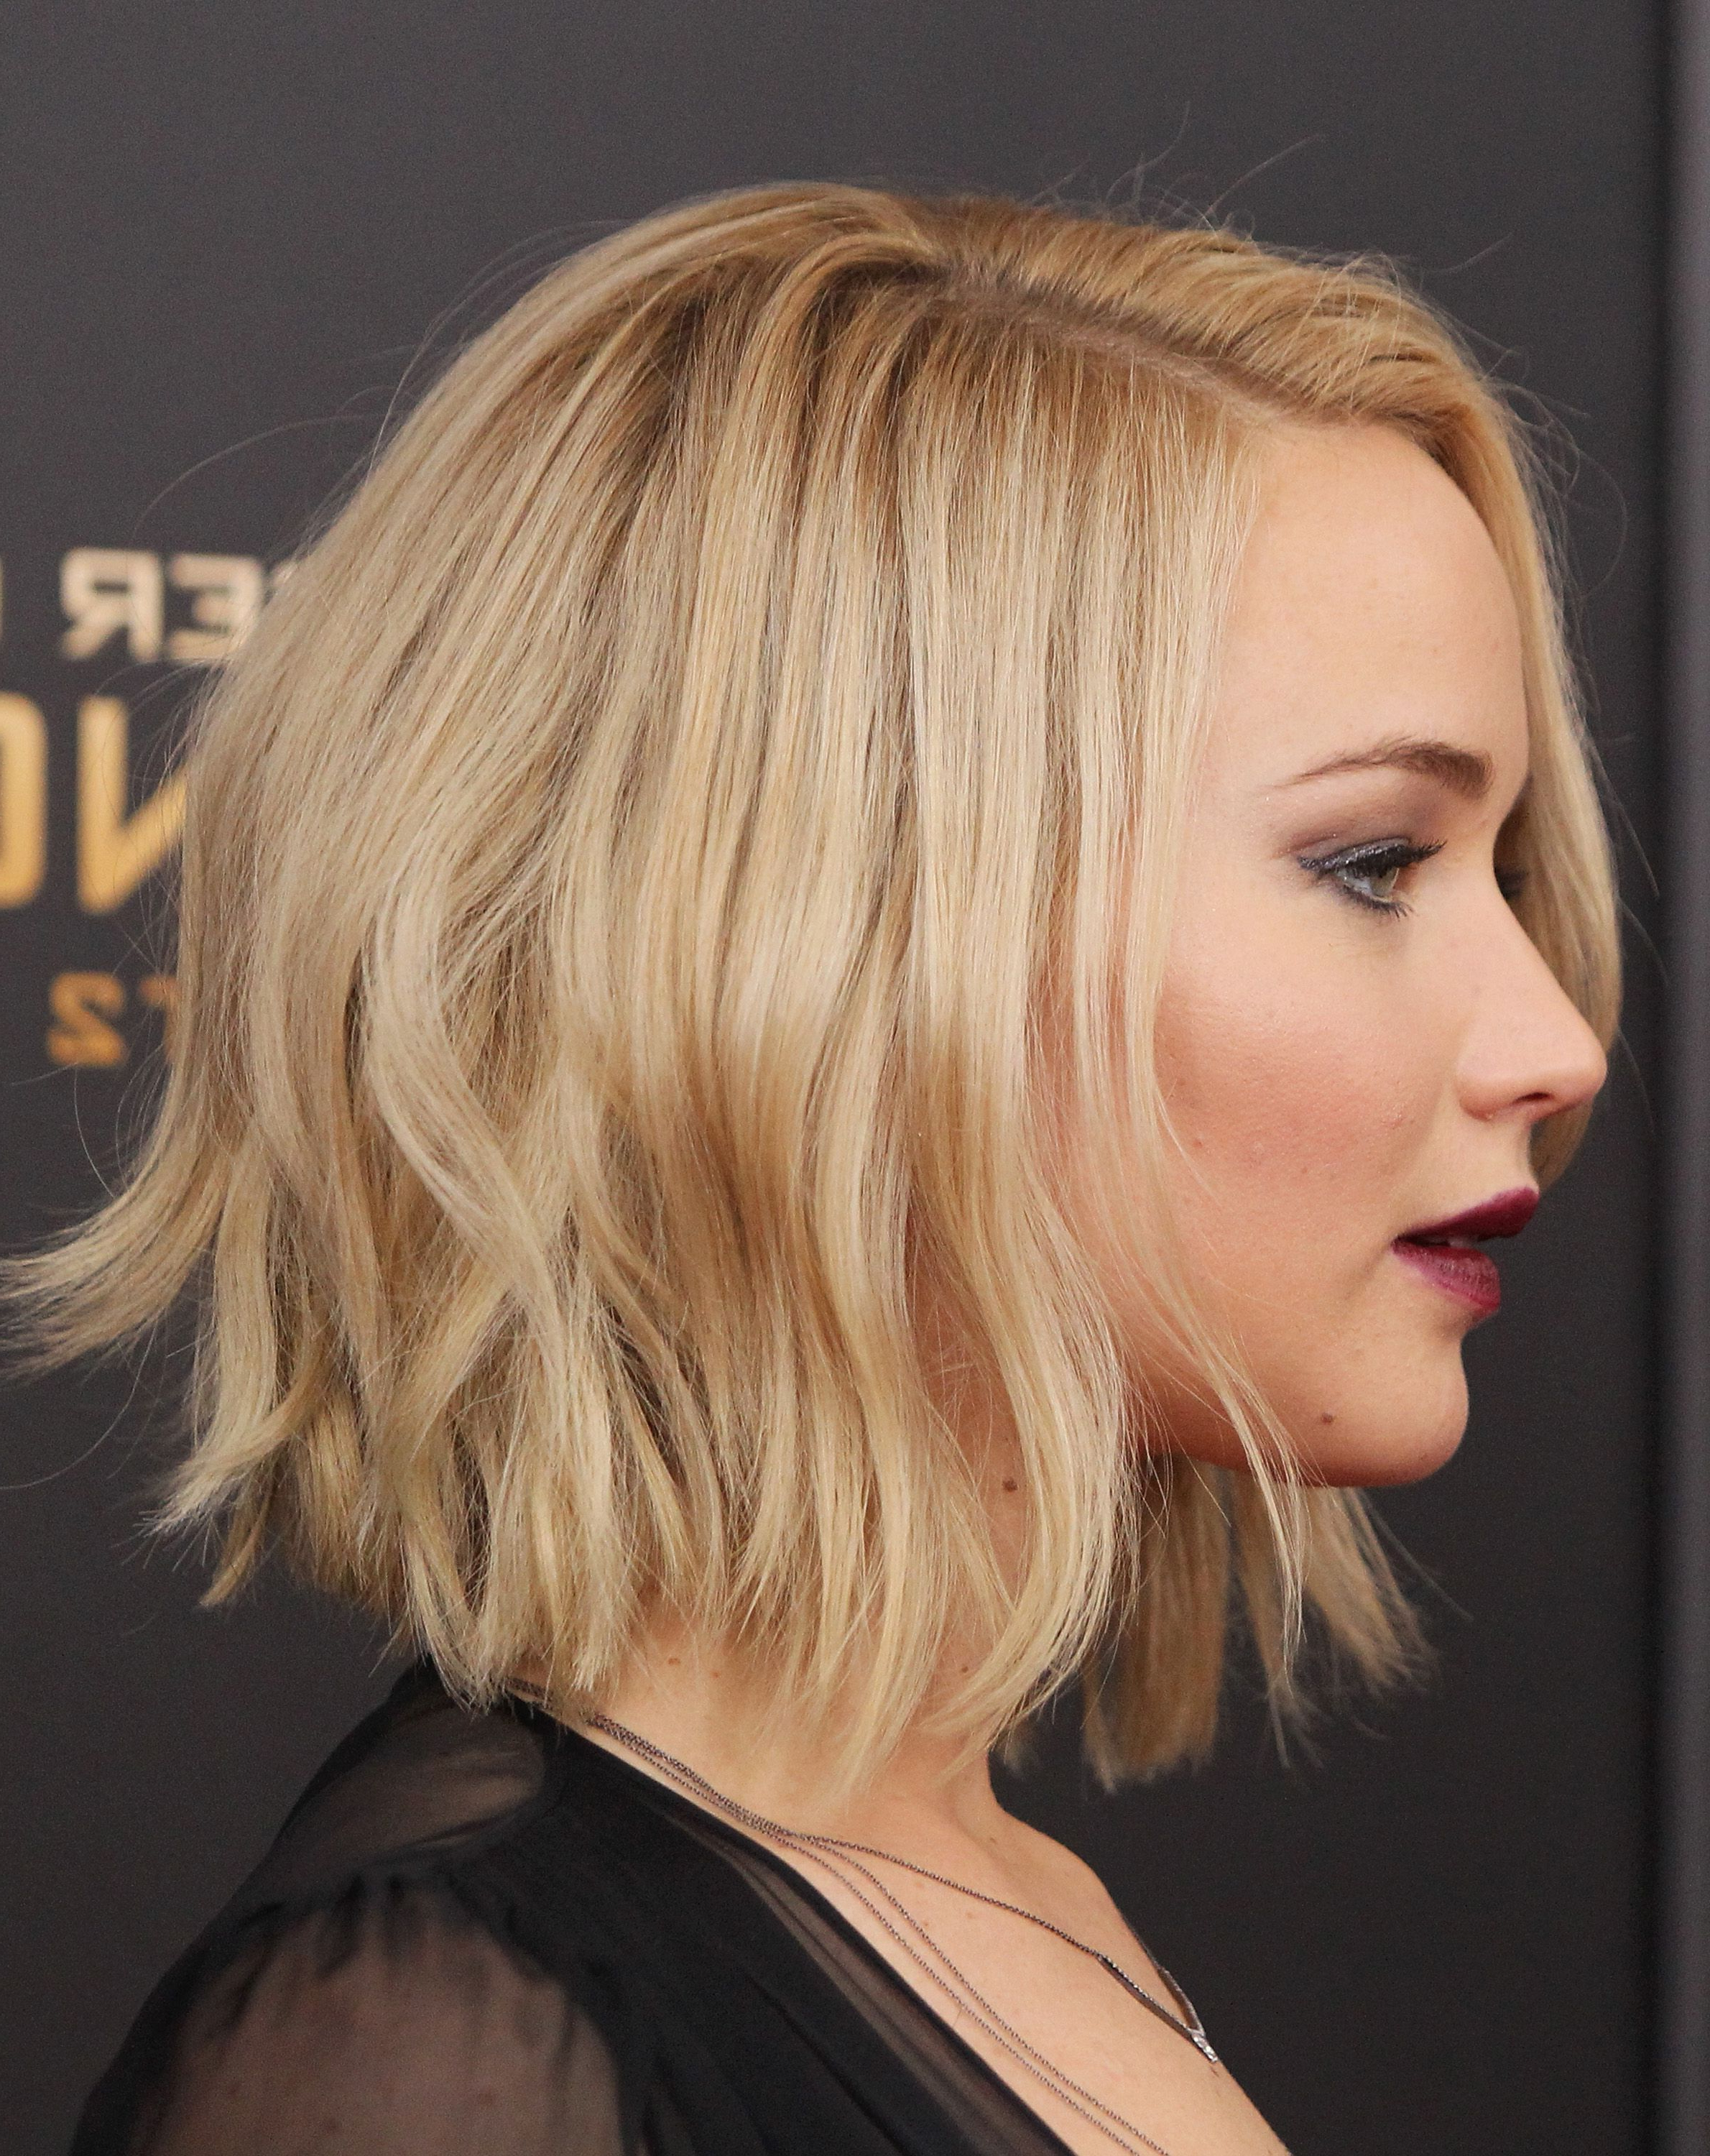 Jennifer Lawrence Short Hair | Girly Stuff In 2018 | Pinterest Pertaining To Jennifer Lawrence Short Haircuts (View 4 of 25)